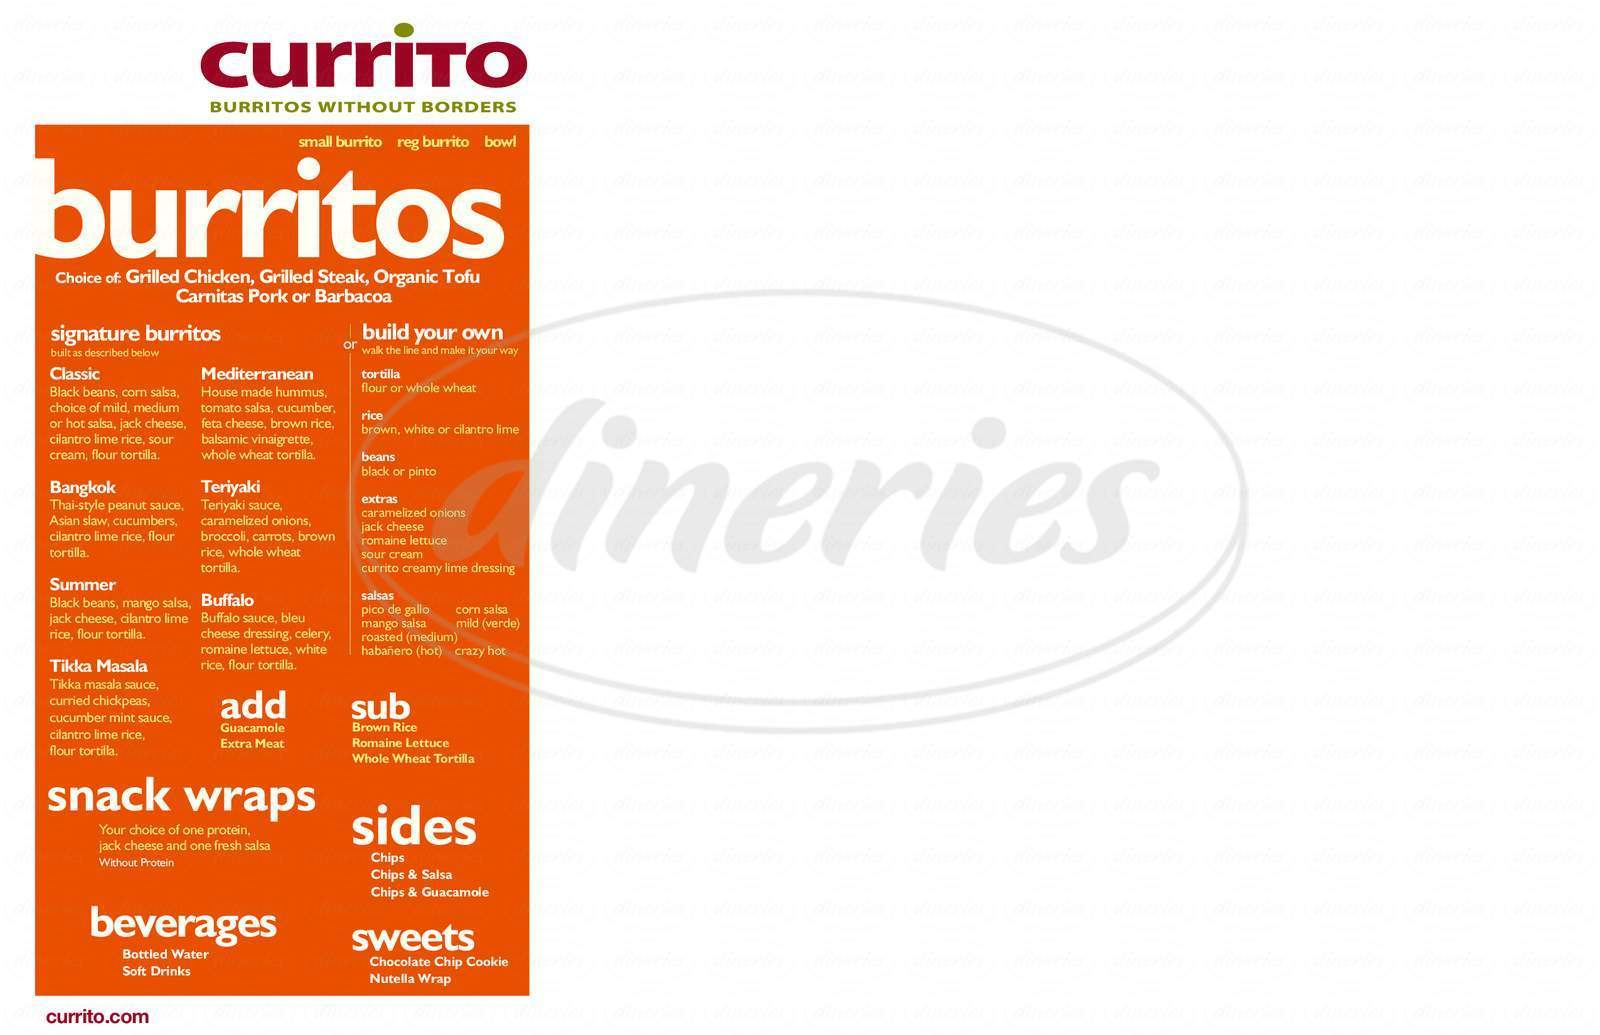 menu for Currito Burritos Without Borders